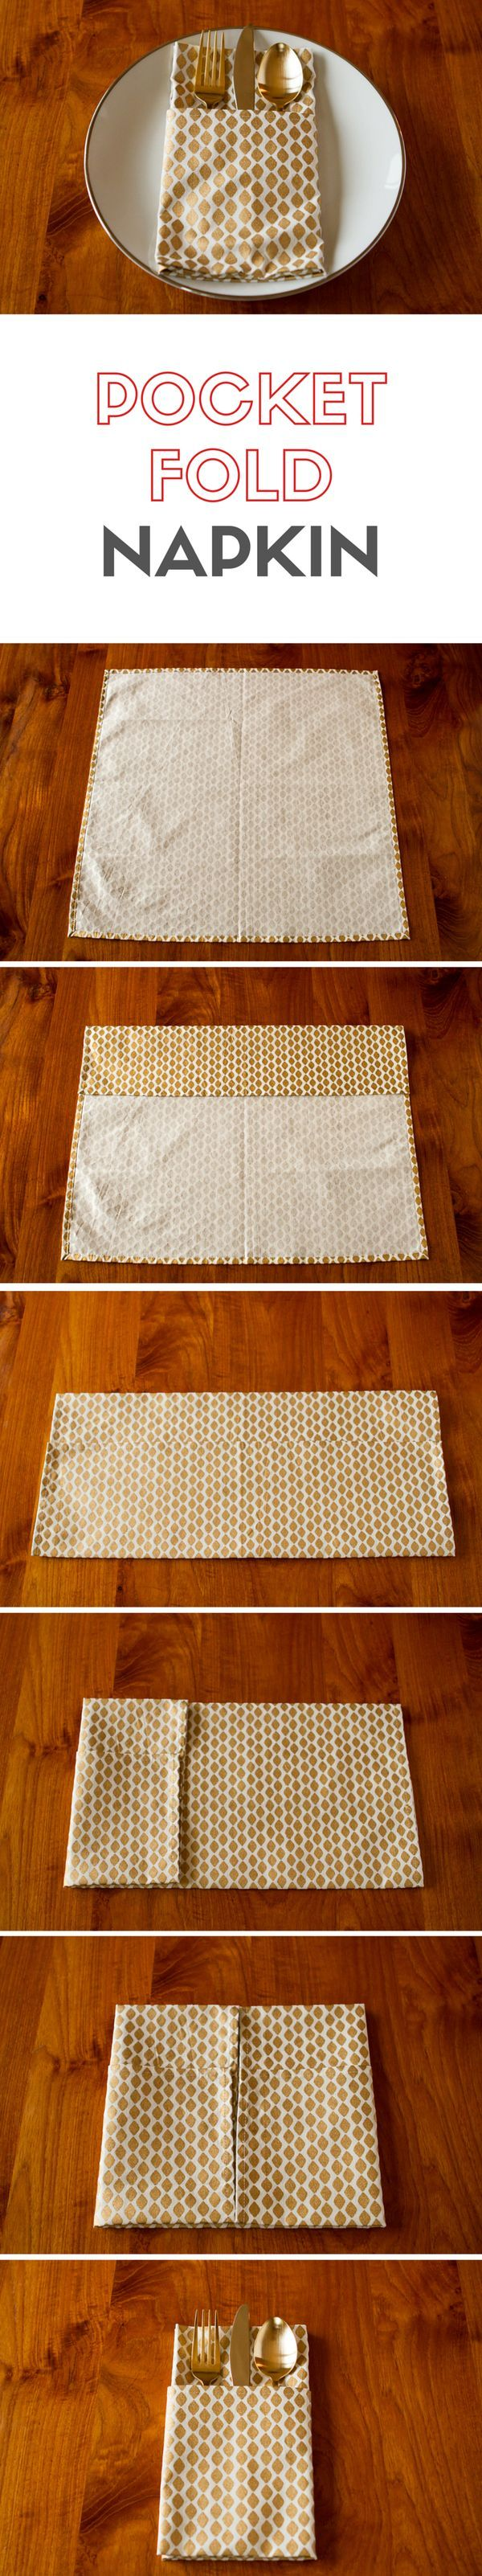 Pocket Fold Napkin -- dress up your table with this easy pocket fold napkin tutorial! Tuck your silverware or an elegant little place card into the pocket...